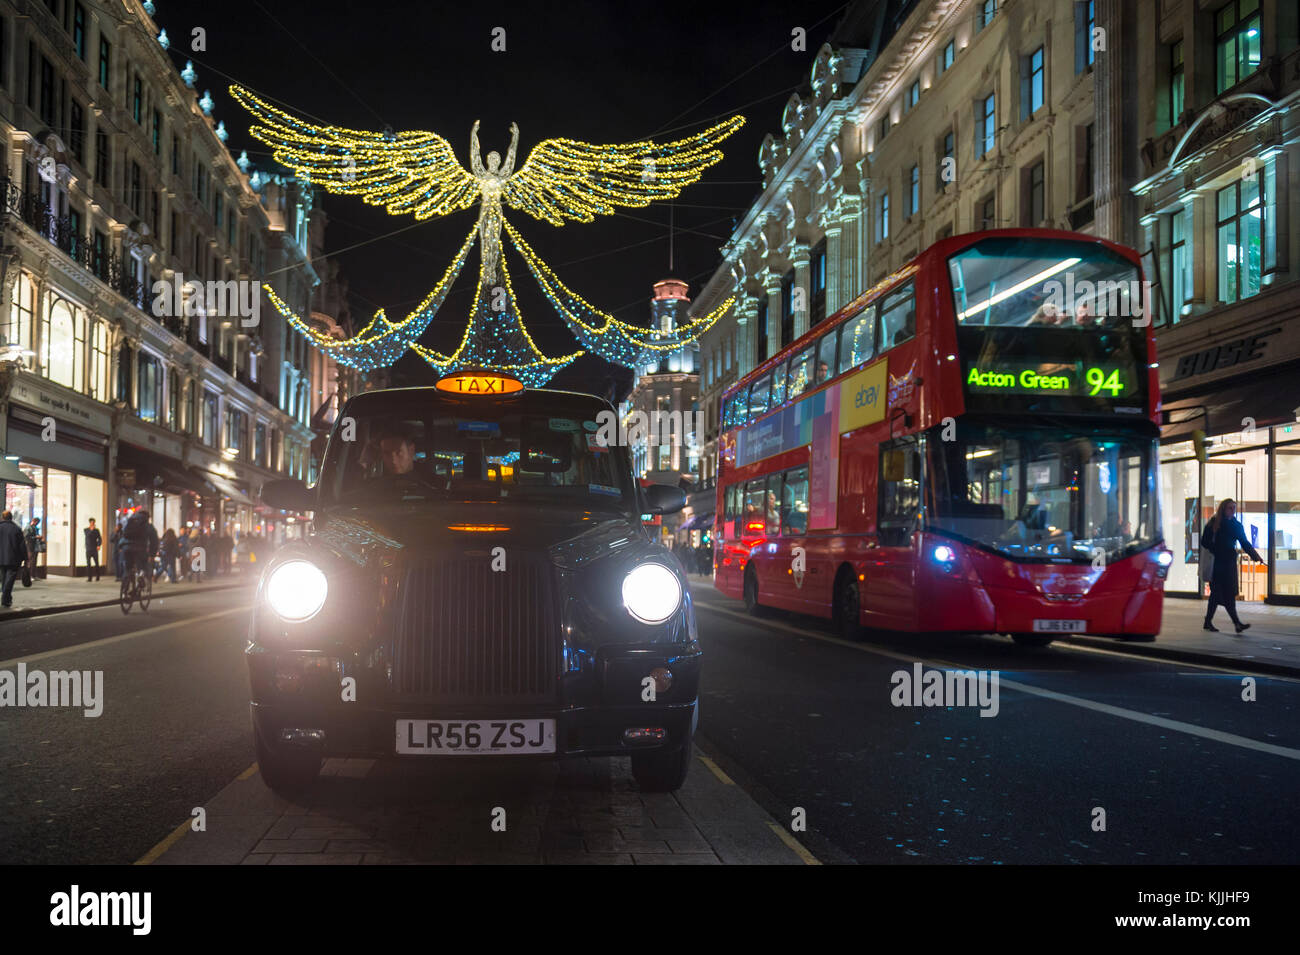 LONDON - NOVEMBER 21, 2017: Double decker buses and black cabs jam the streets under twinkling Christmas angels - Stock Image